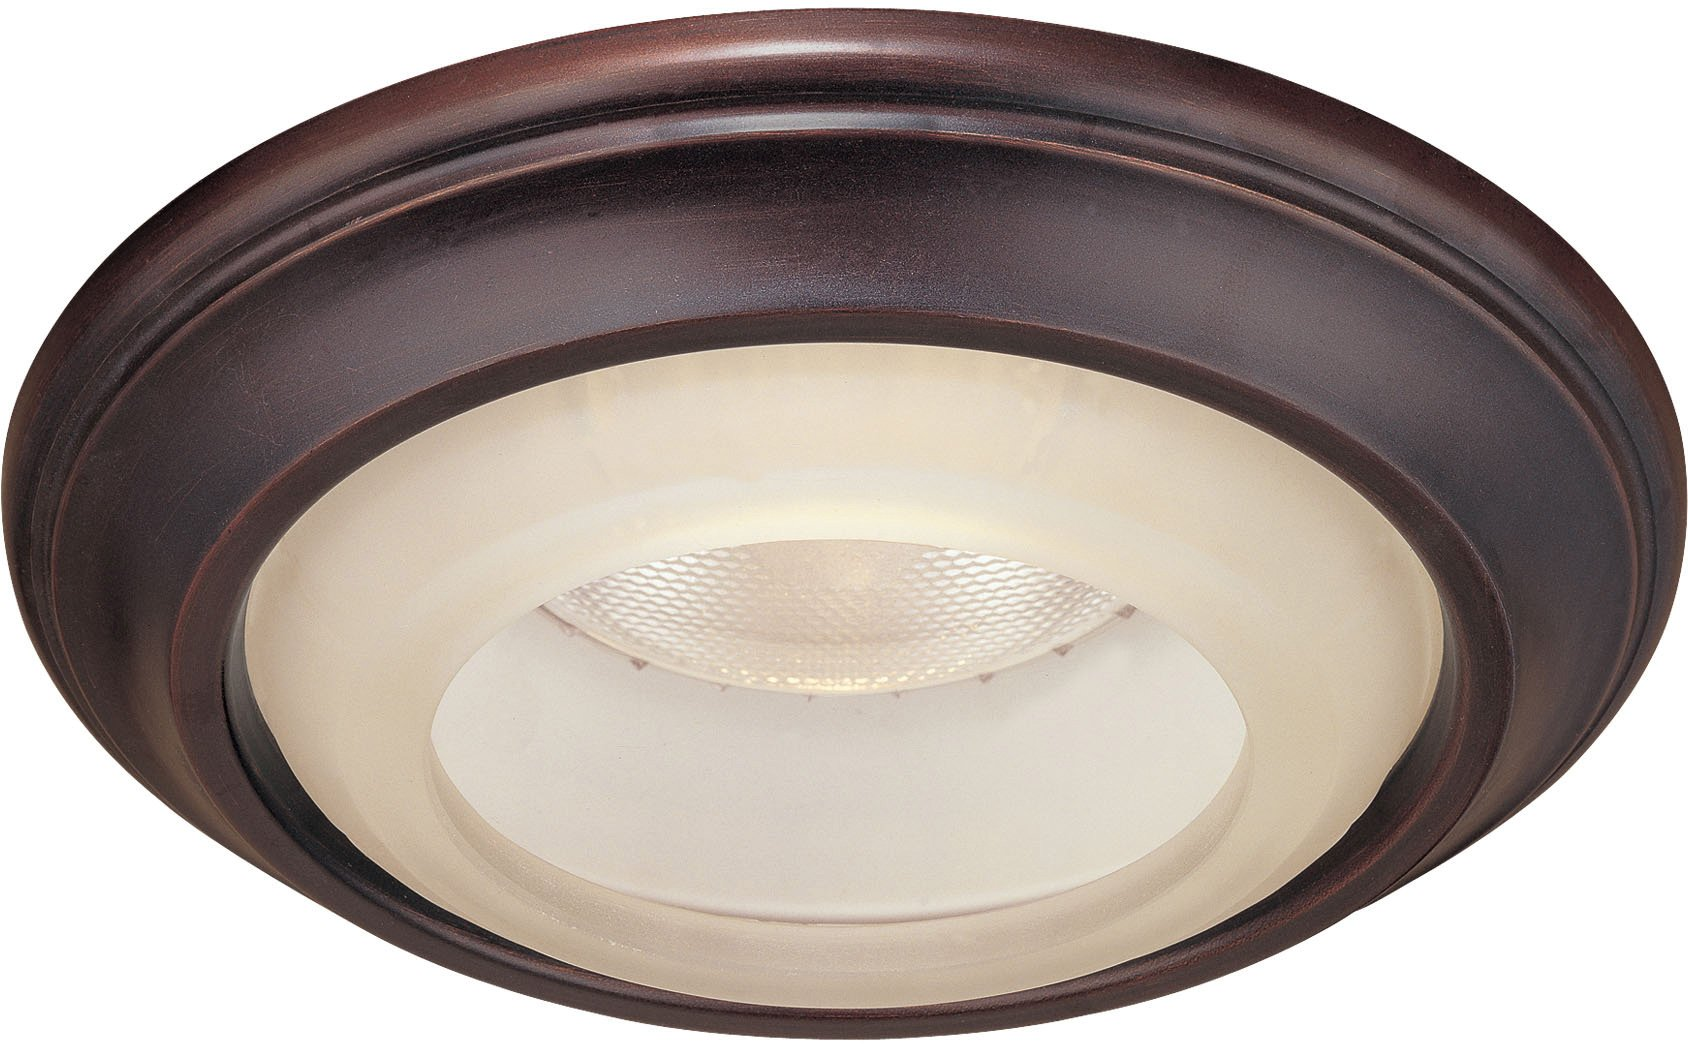 Minka Lavery Recessed Trims 2718-167, 1730 Series 6 Inch Round Glass Recessed Lighting Trim Ring, 50 Watts, Bronze